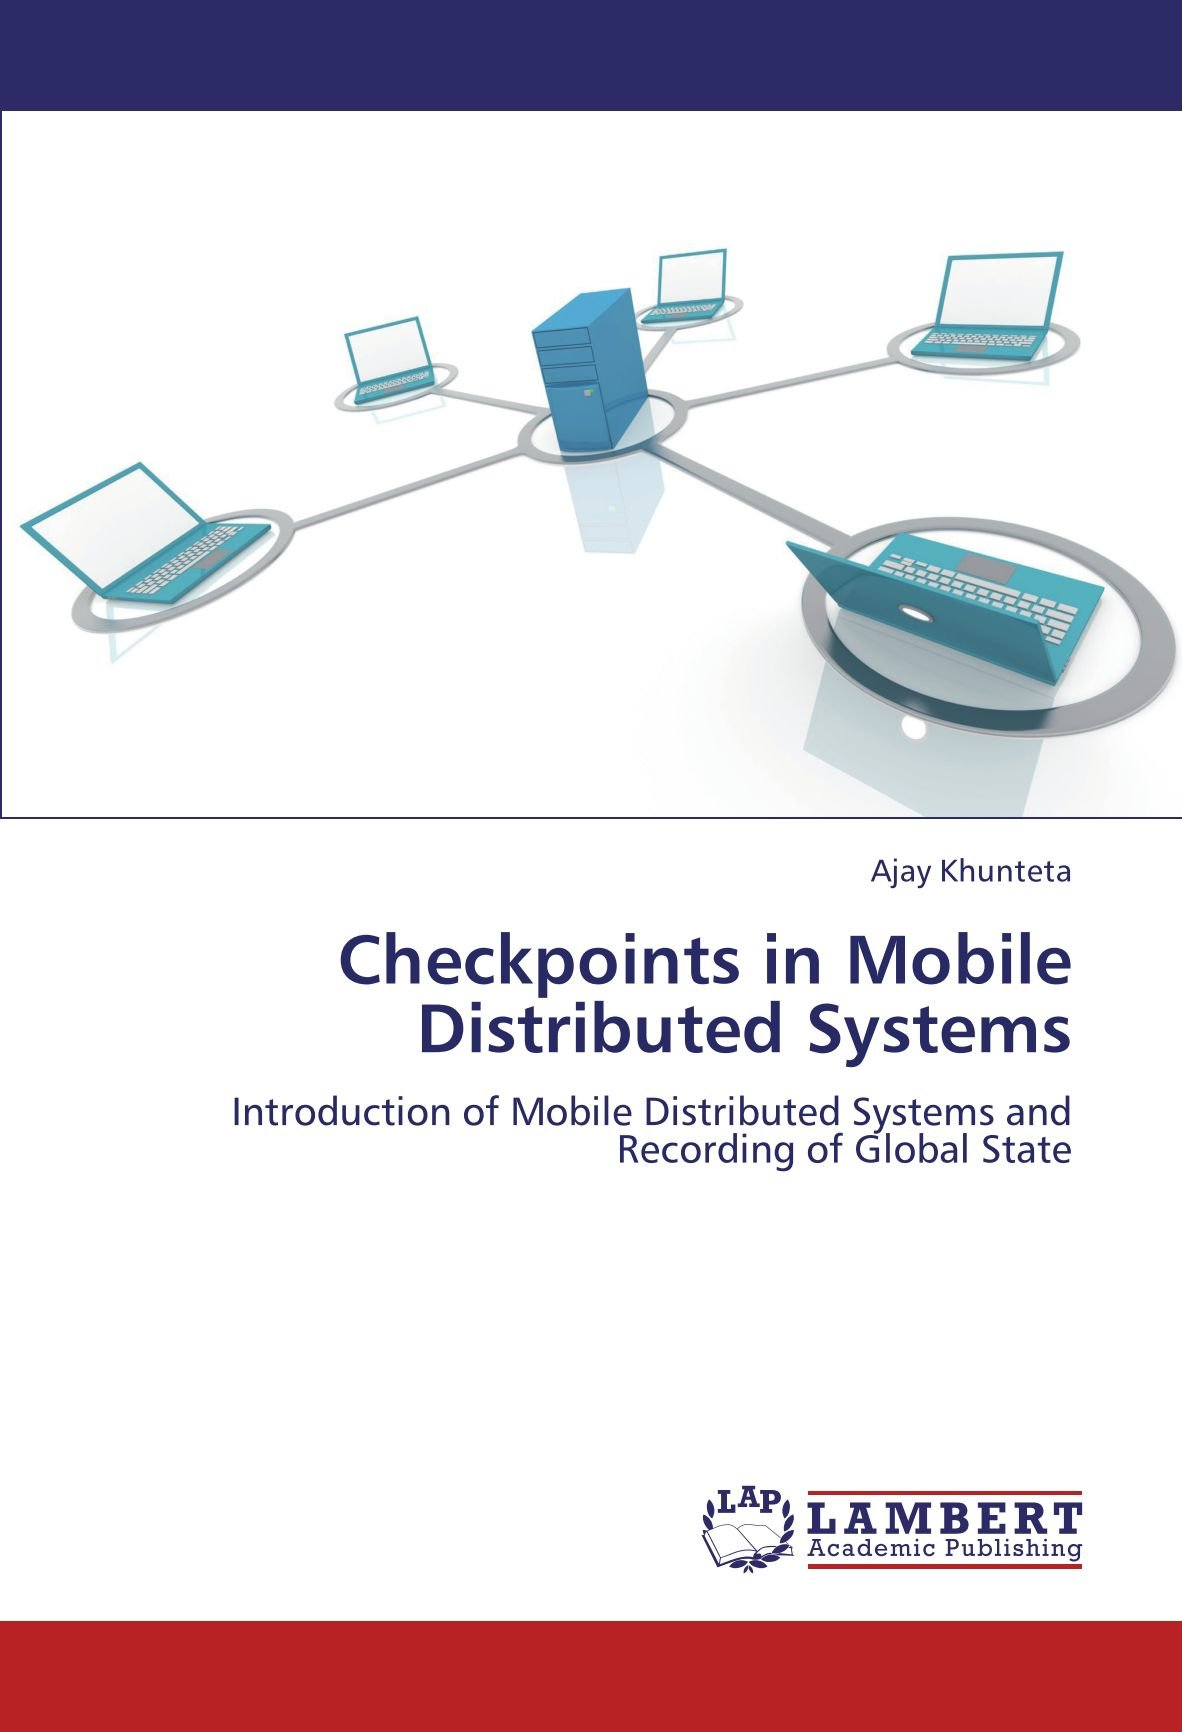 Checkpoints in Mobile Distributed Systems: Introduction of Mobile Distributed Systems and Recording of Global State pdf